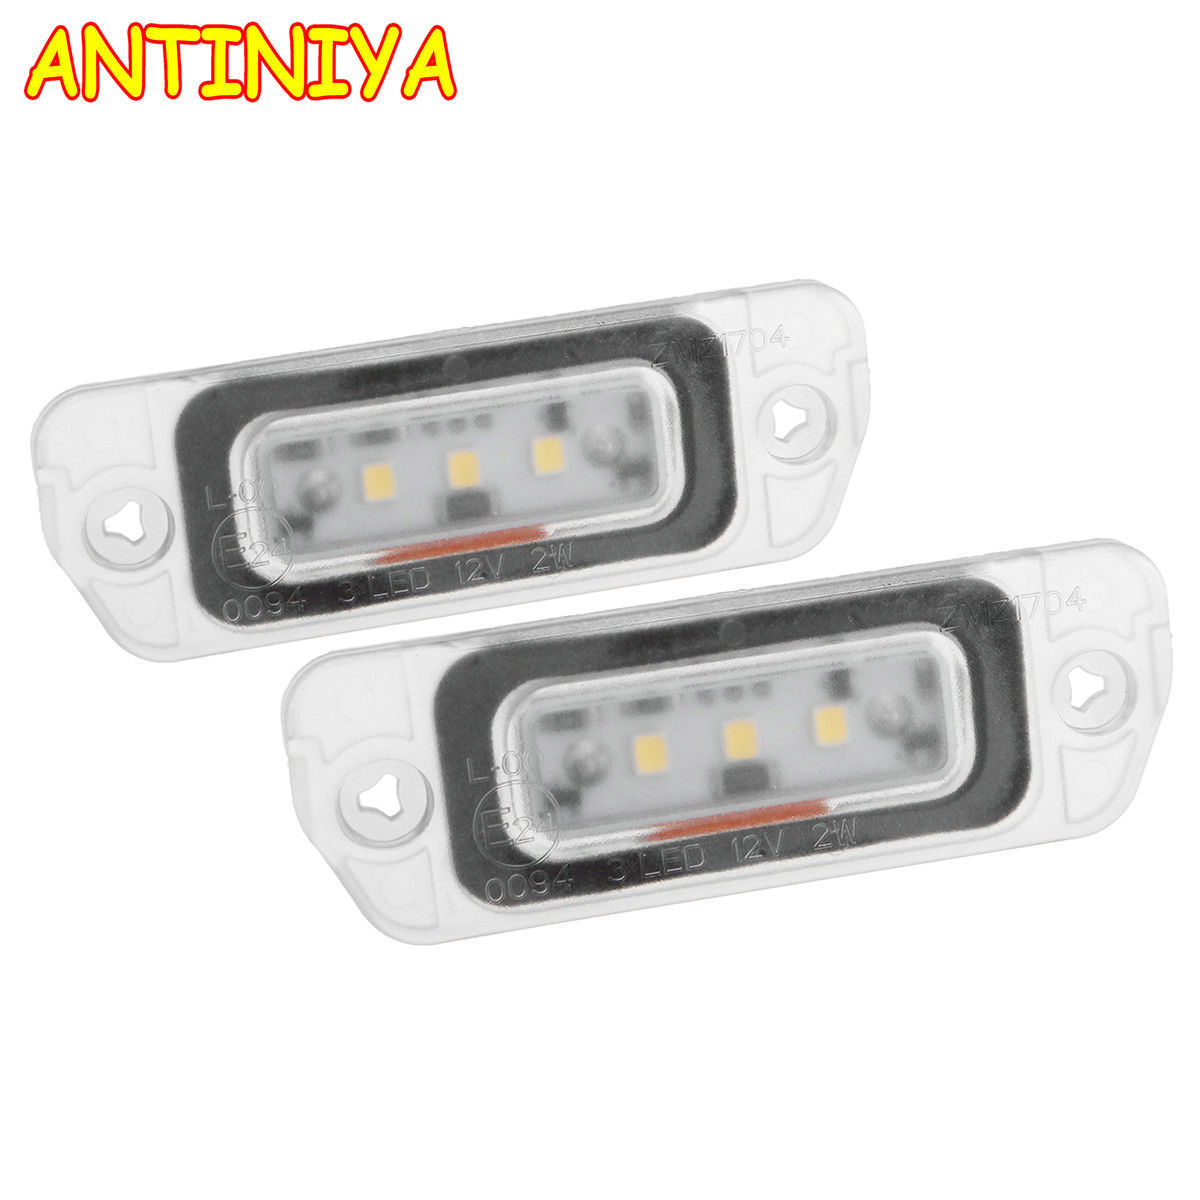 2pcs Error Free LED License Plate Light Lamp A2518200166 Fit for Mercedes X164 W164 W251 GL ML R Class 2006 2007 2008-2012 White music hall bluetooth 4 0 valve vacuum tube amplifier stereo power integrated audio hifi amp support usb